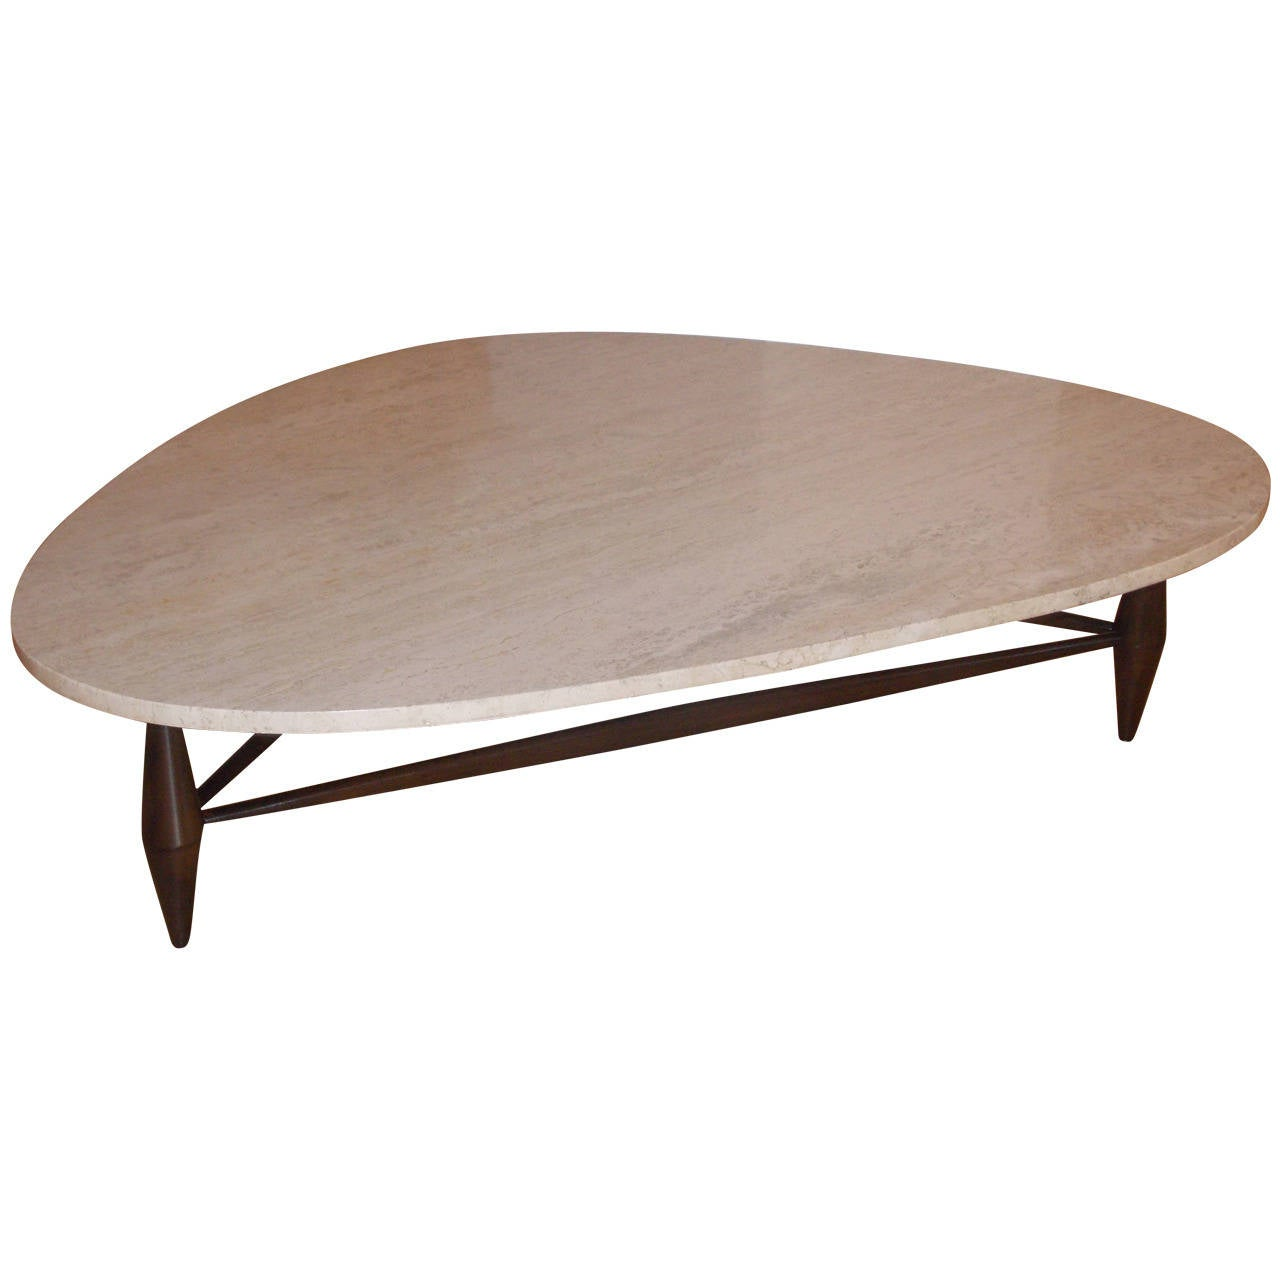 Mid century marble top coffee table at 1stdibs Coffee tables with marble tops